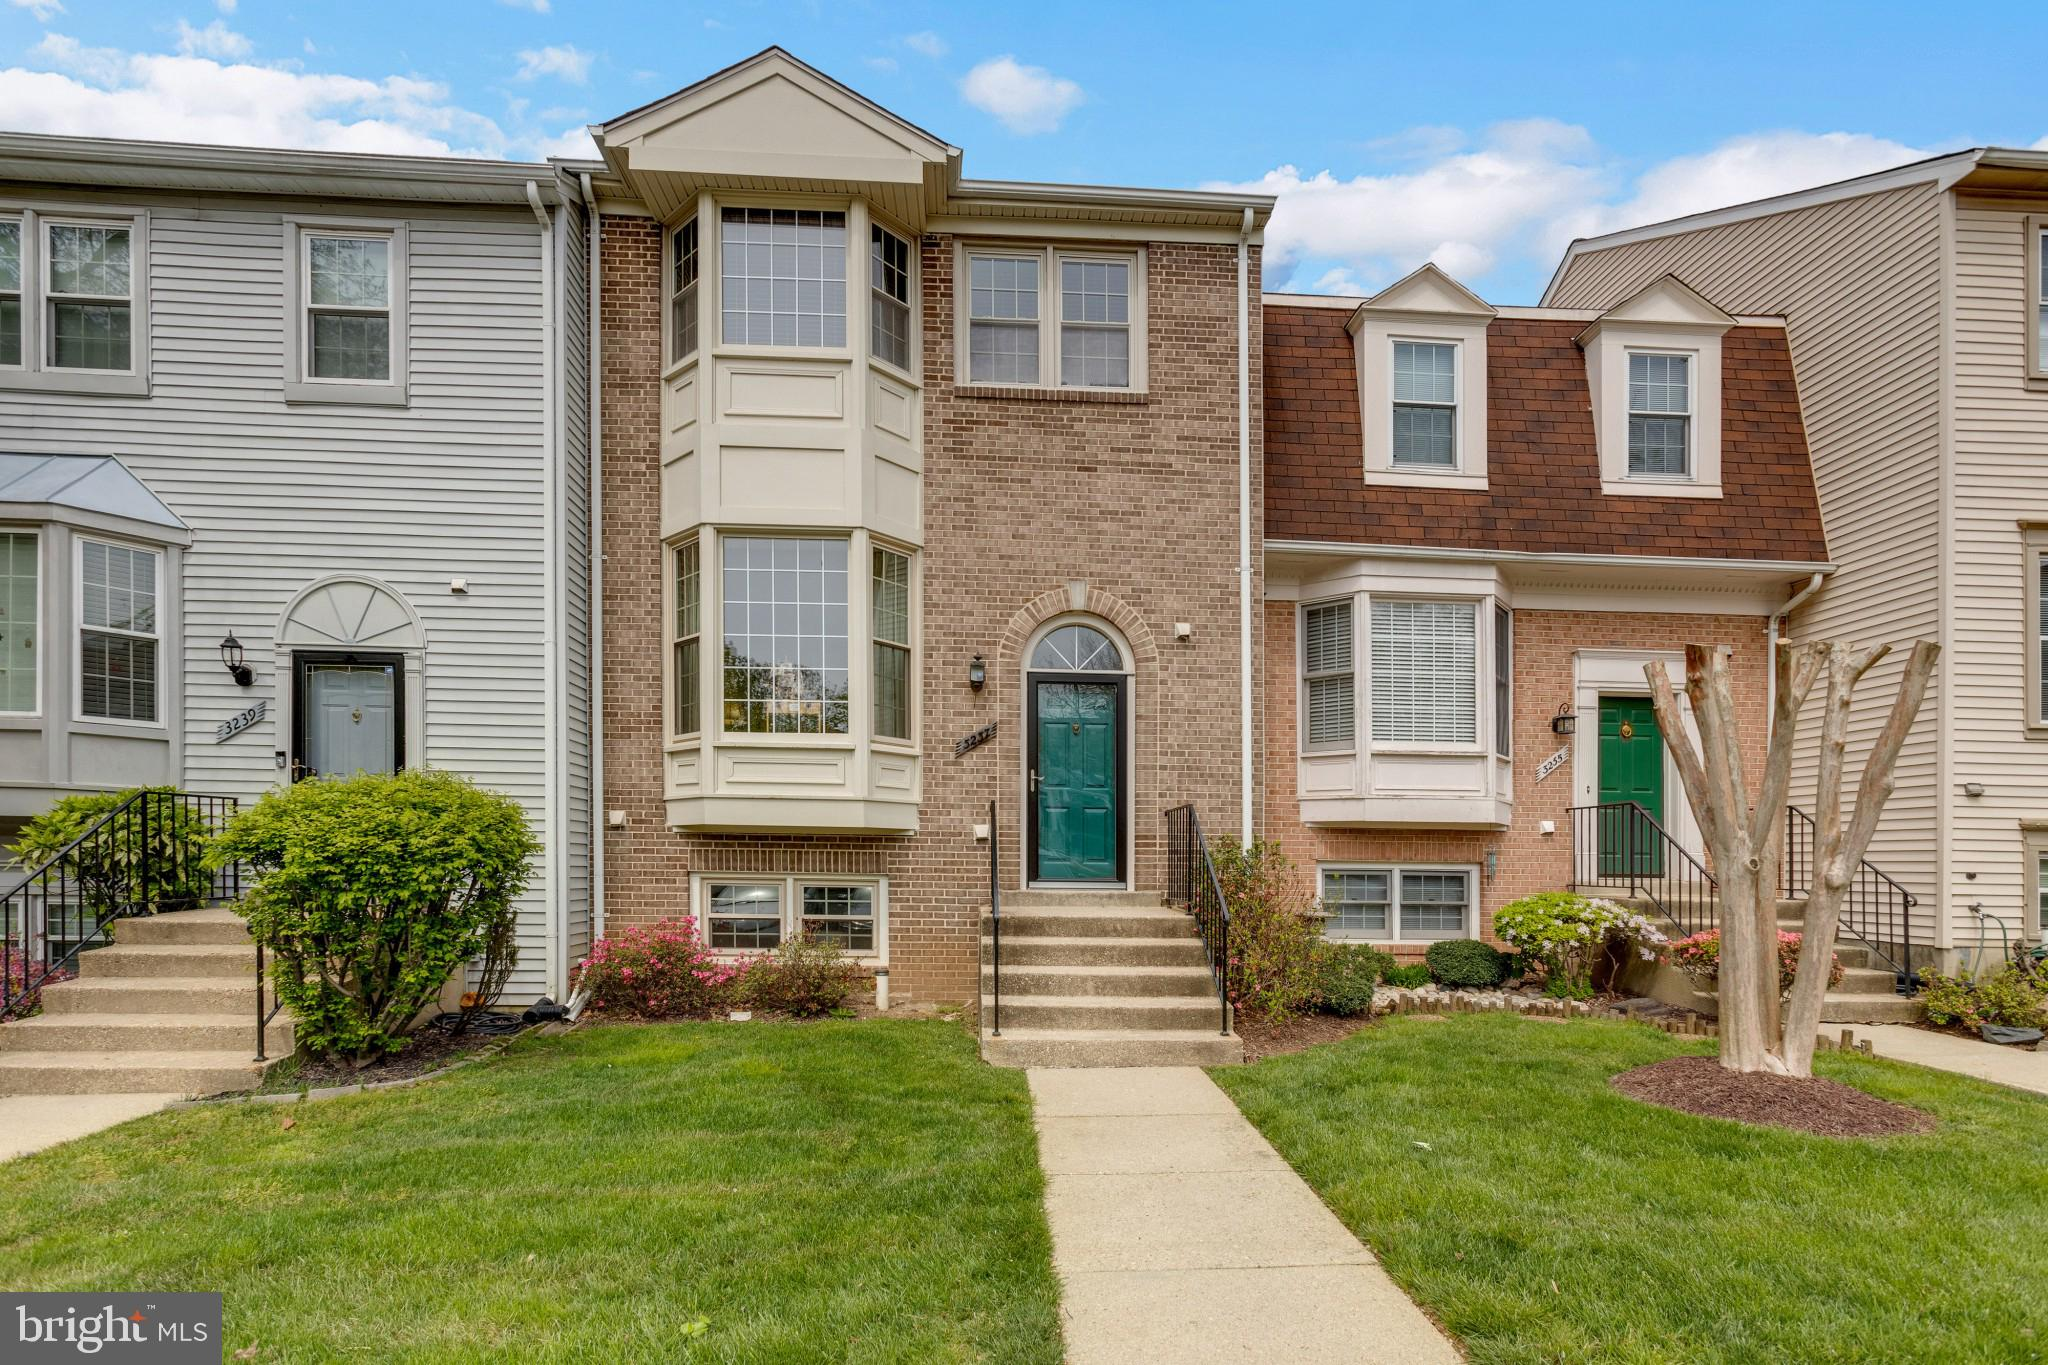 FABULOUS ALL BRICK TOWNHOME FEATURING 4 BEDROOMS , 3 FULL BATHS AND 1 HALF BATH. GLEAMING CHERRY FLO